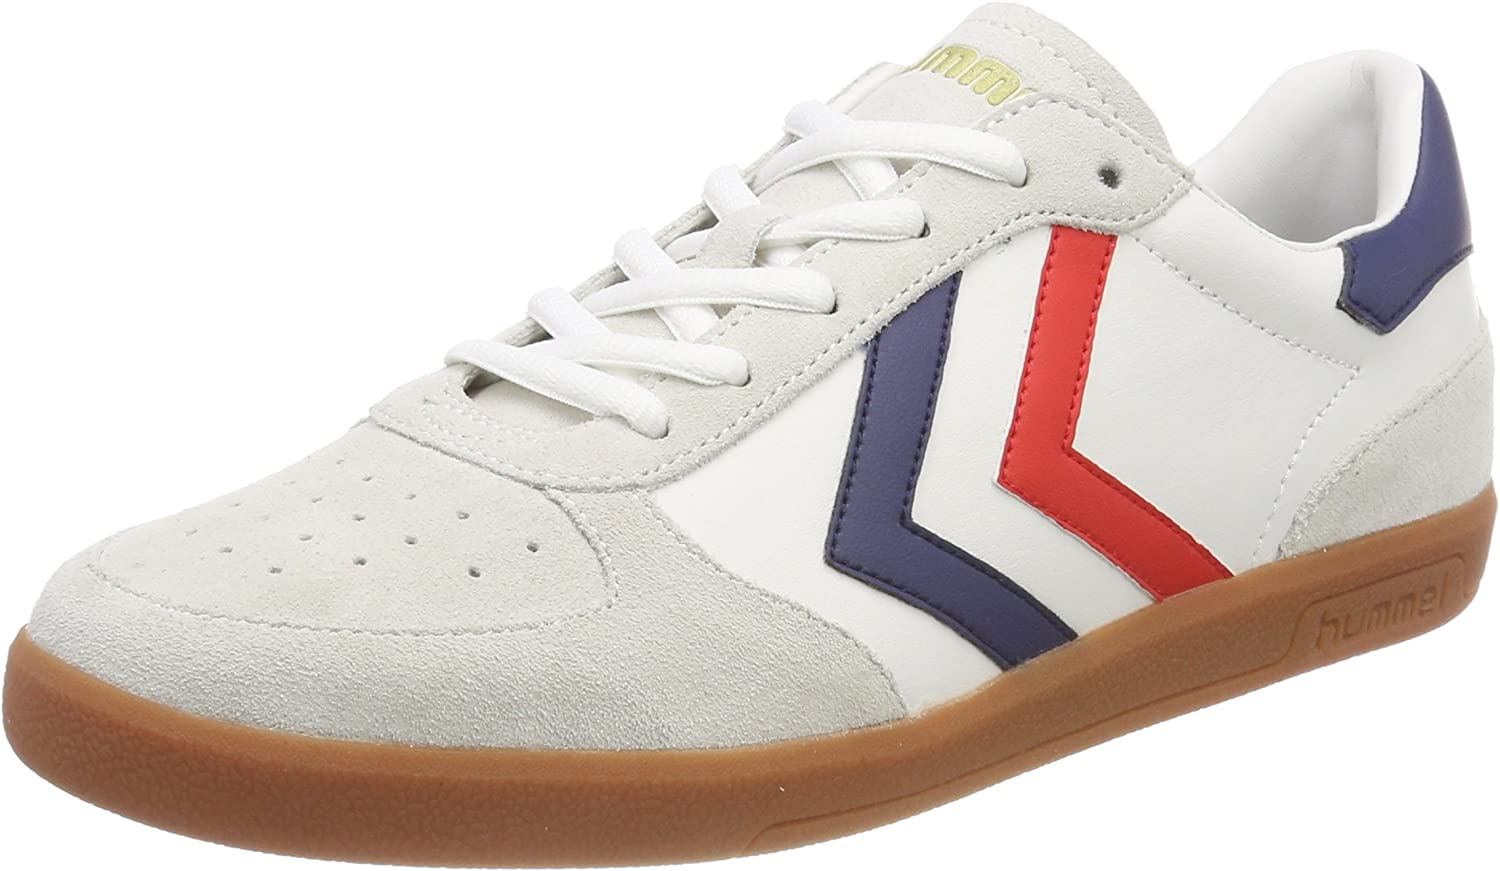 Hummel Unisex Adults' Victory Leather Trainers